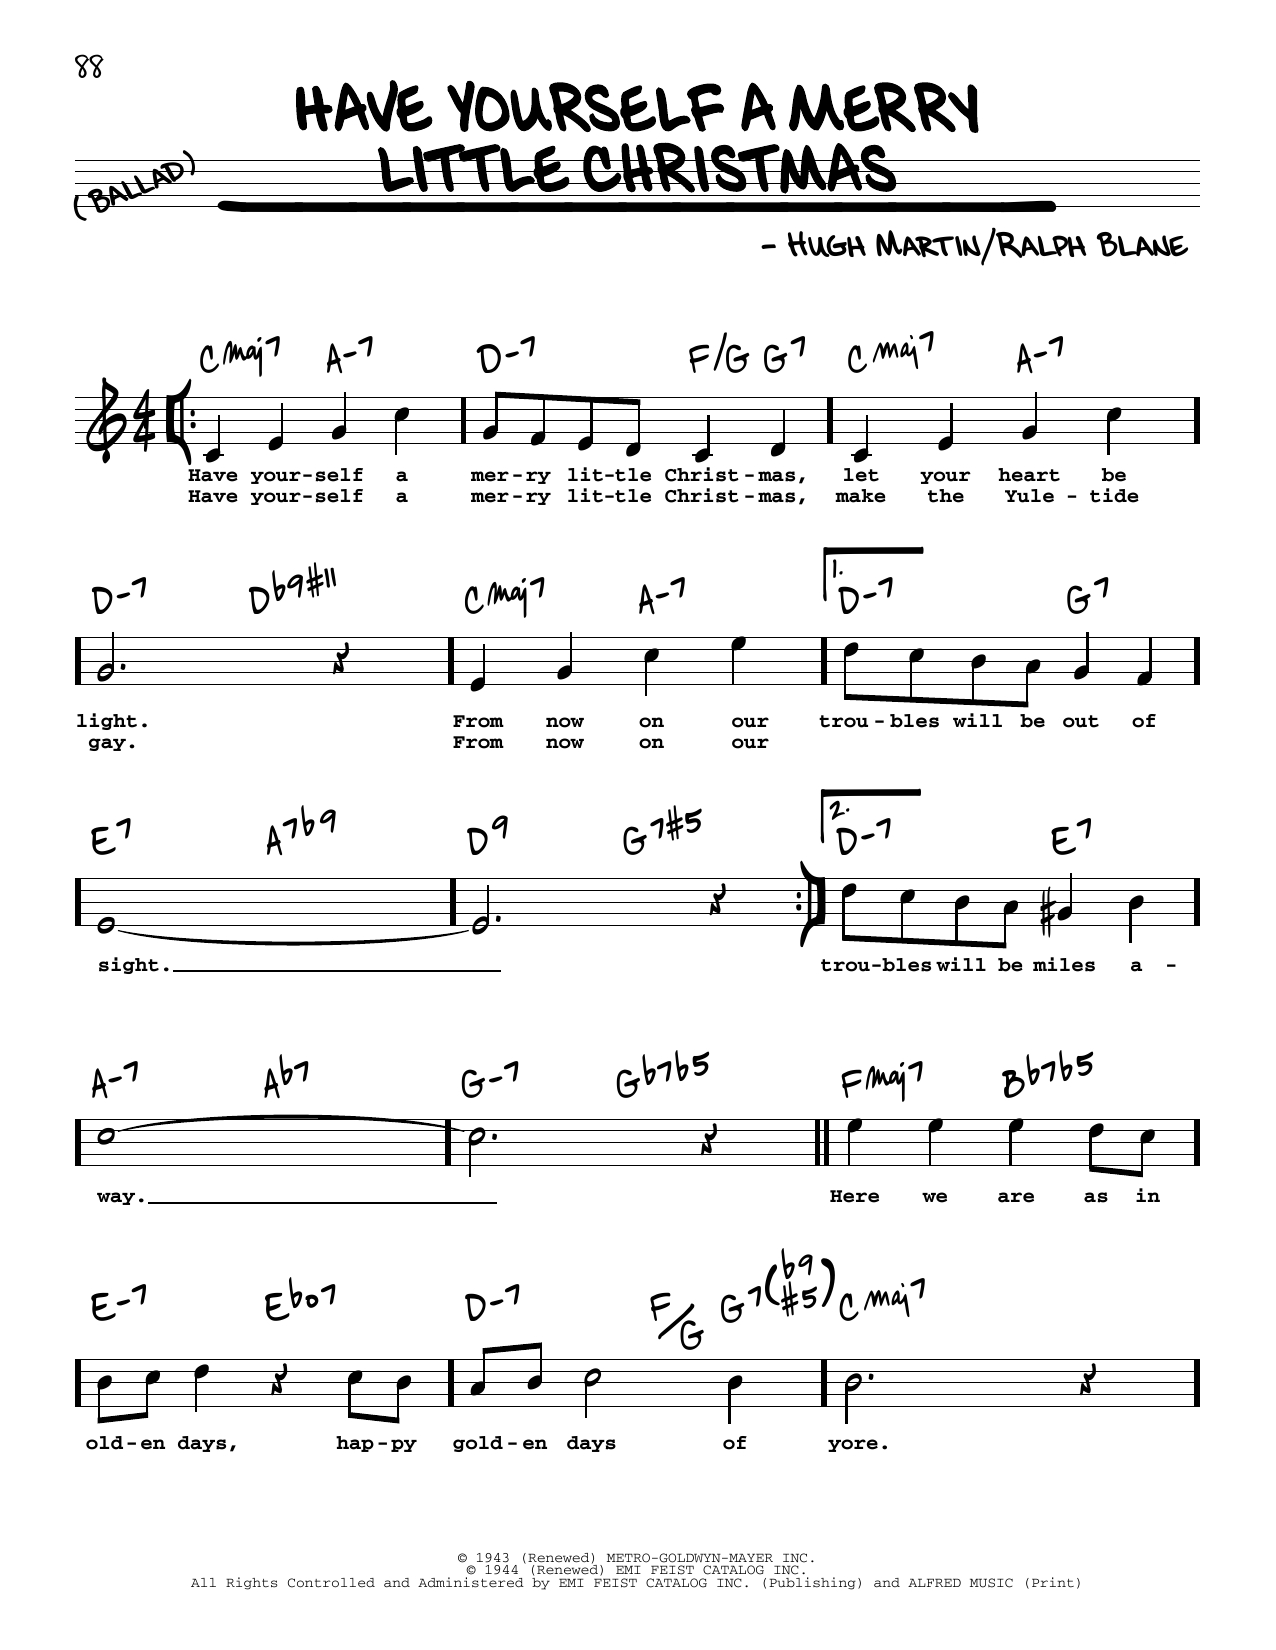 Have Yourself A Merry Little Christmas Chords Have Yourself A Merry Little Christmas Sheet Music Hugh Martin